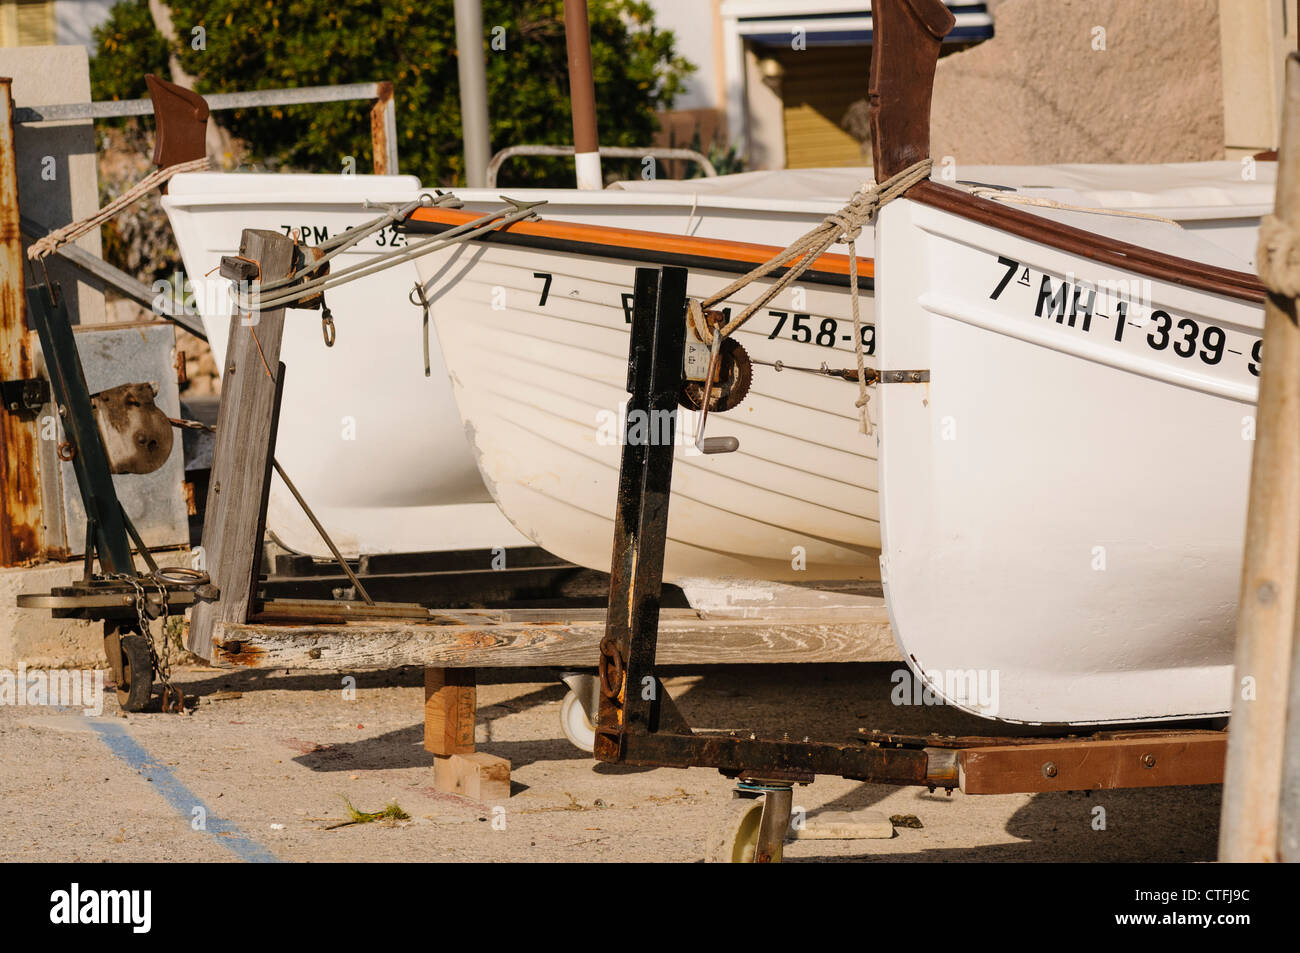 Small Spanish fishing boats tied up on land - Stock Image